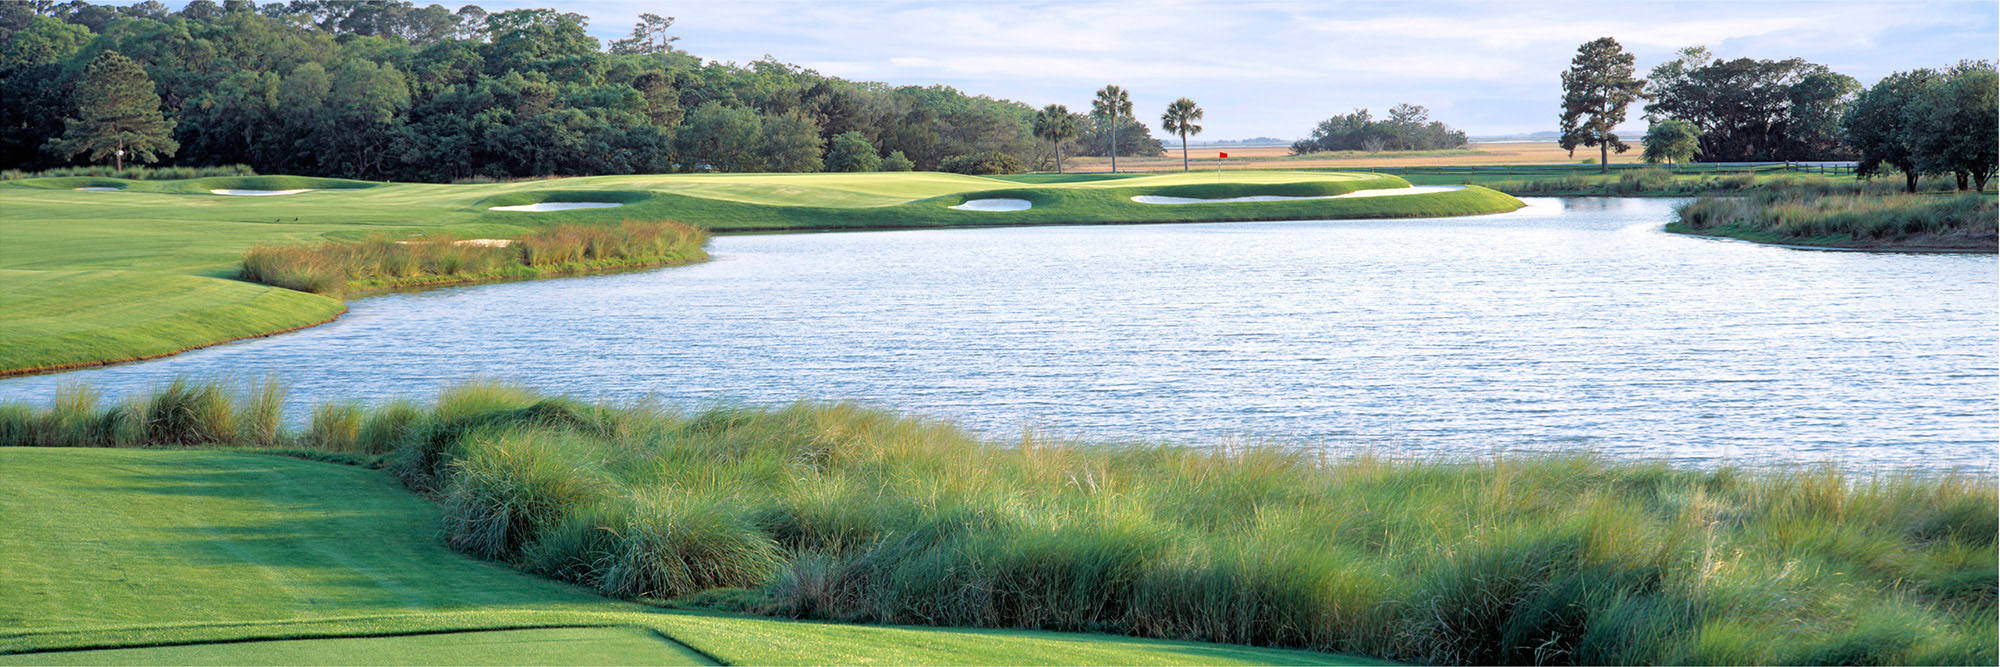 Golf Course Image - Sea Island Retreat No. 6